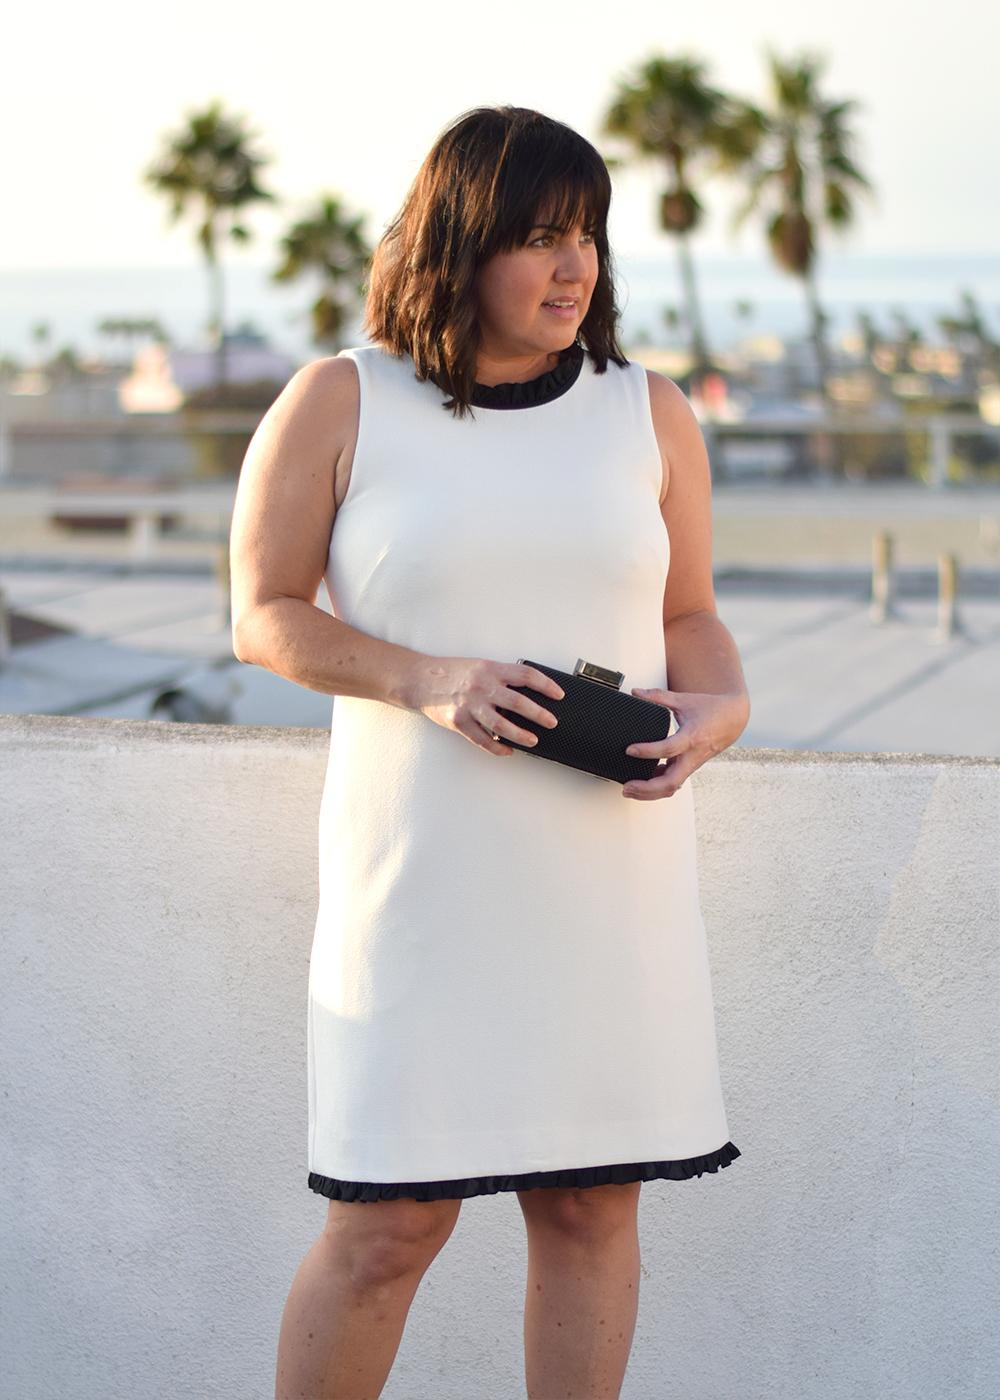 how-to-style-a-dress-4-ways-j-crew-ruffle-trim-shift-dress-barefoot-in-la-fashion-blog-outfit-ideas-0786